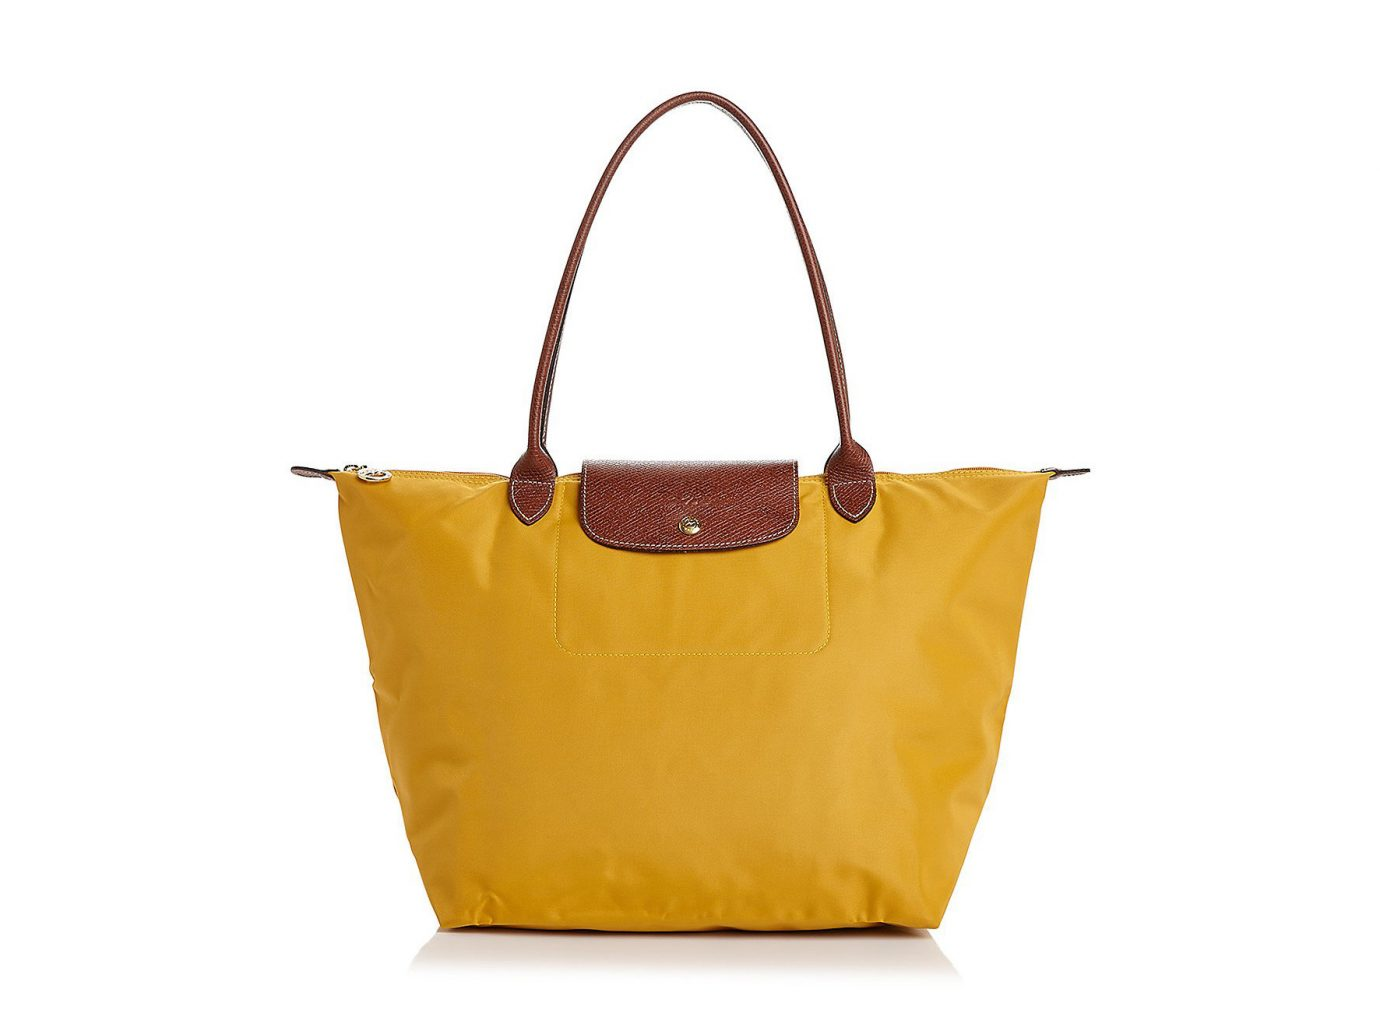 Style + Design handbag yellow bag shoulder bag fashion accessory brown leather product tote bag accessory beige product design brand caramel color